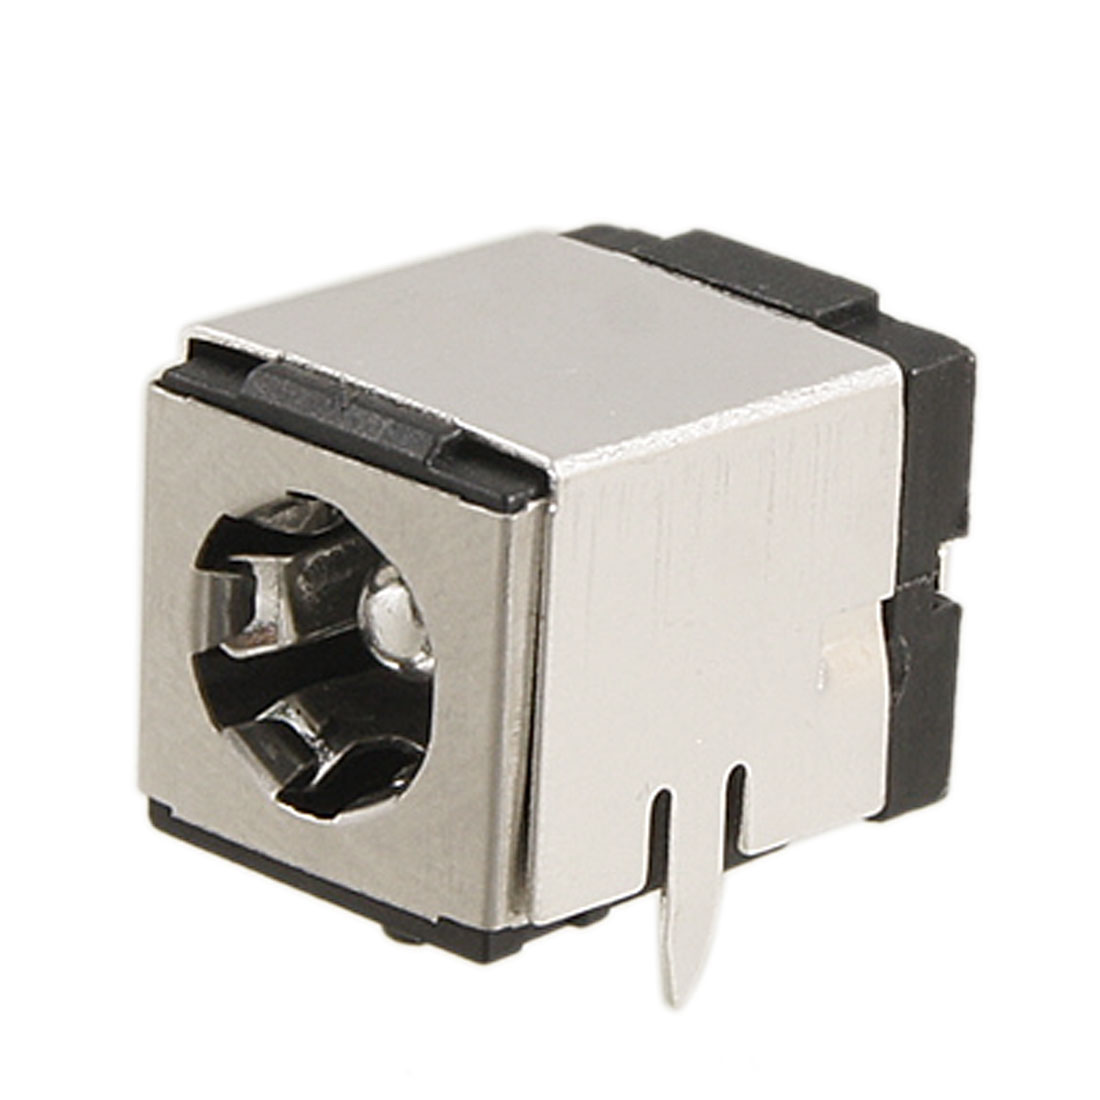 2.5mm Pin PJ015 DC Power Jack Plug for IBM Thinkpad 570E 600 A20